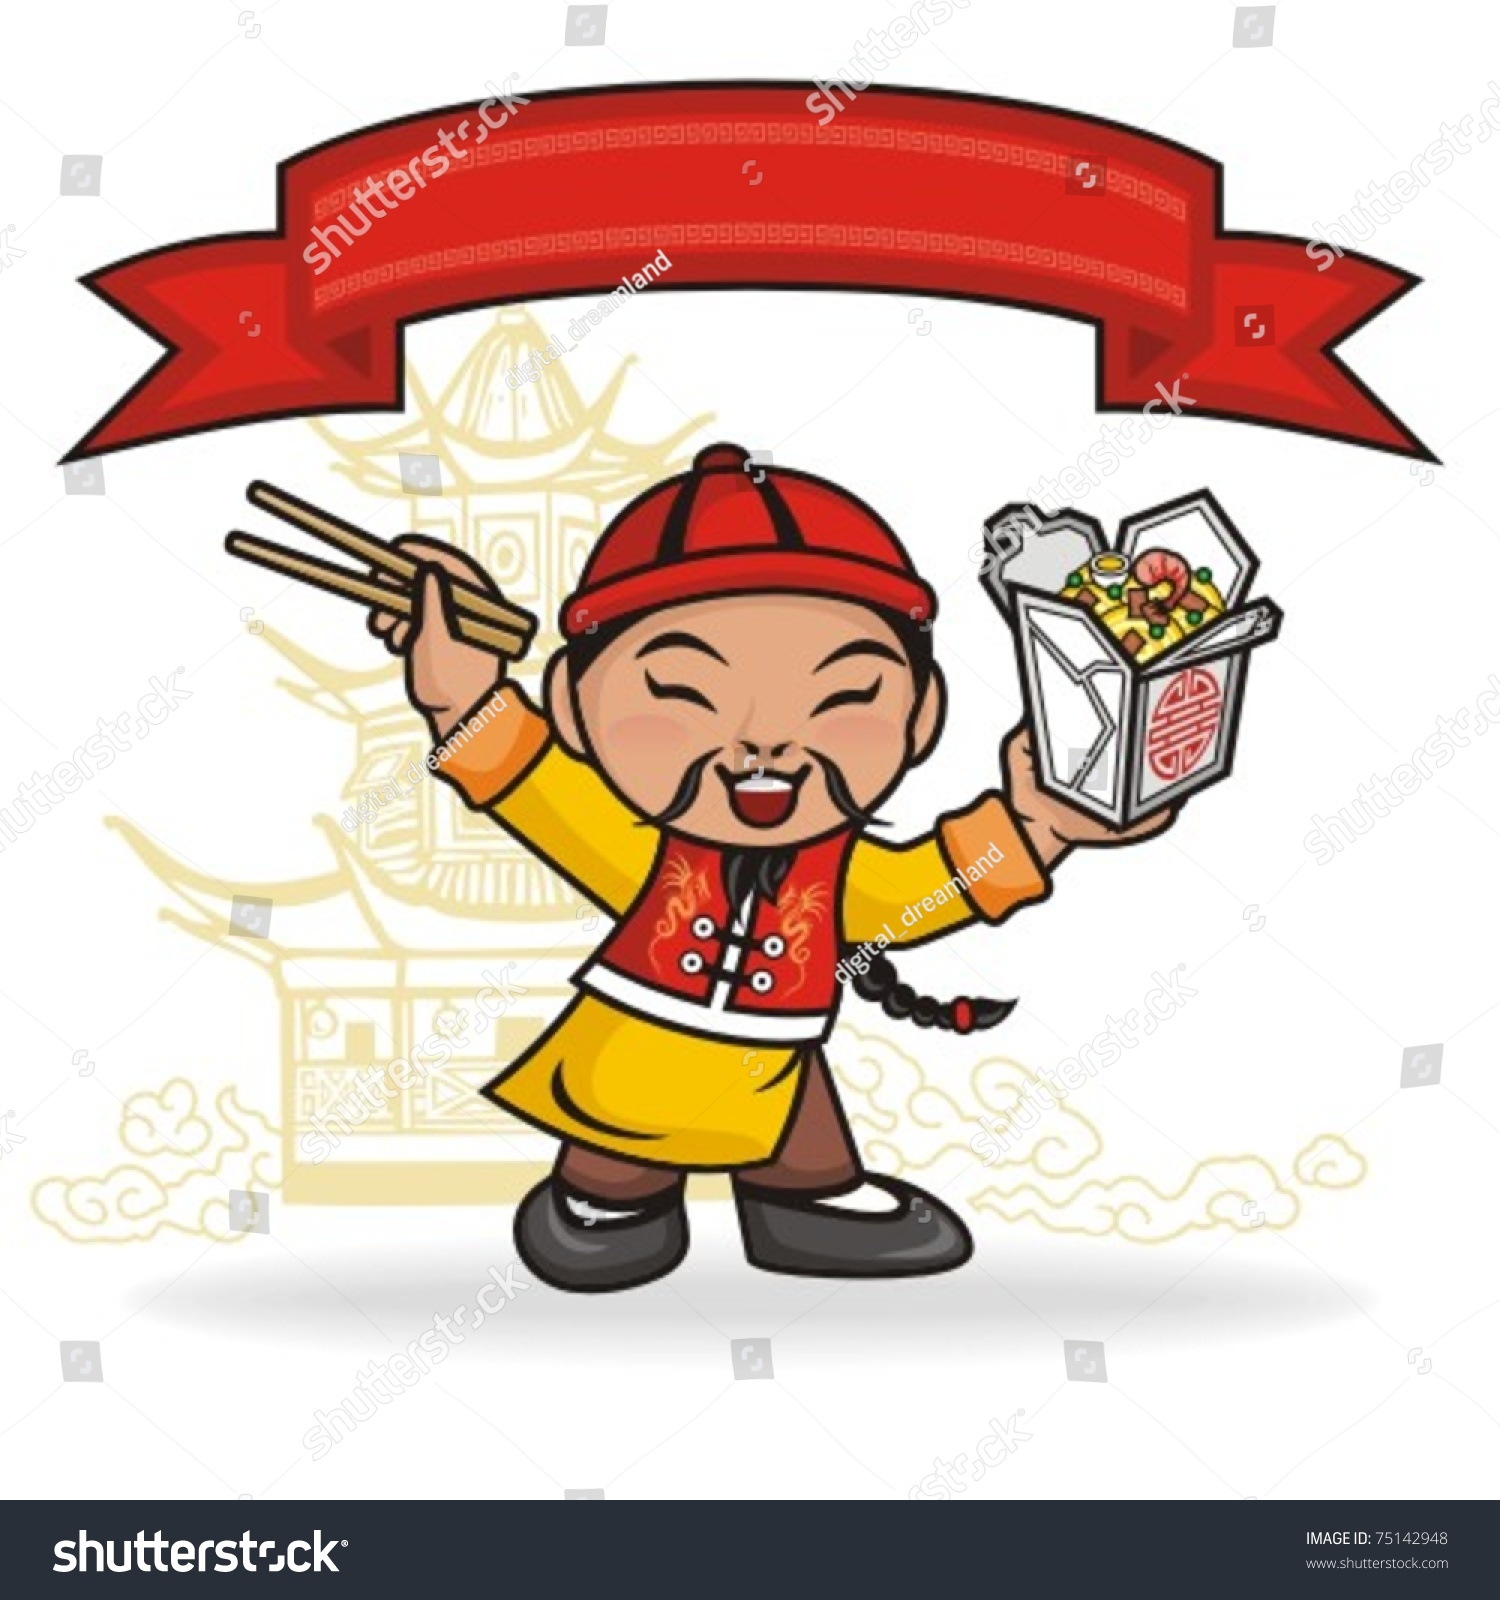 Chinese Foods Cartoons and Comics - funny pictures from CartoonStock